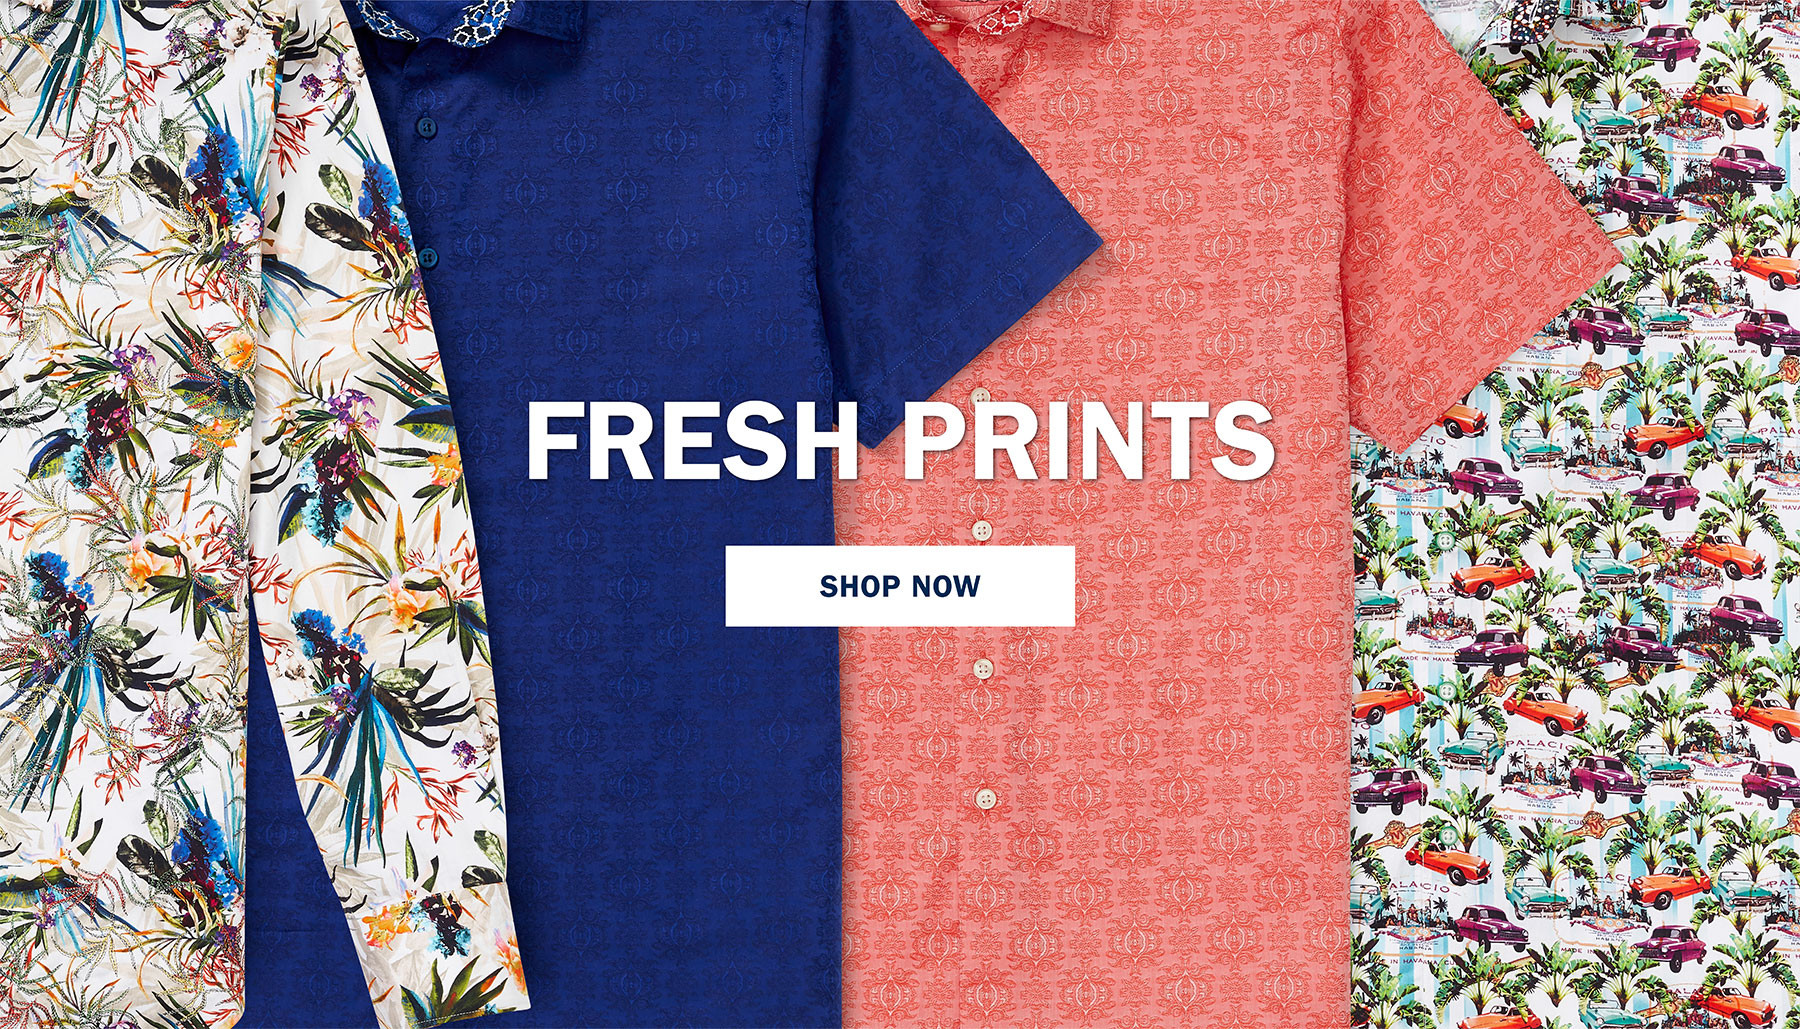 FRESH PRINTS | SHOP NOW